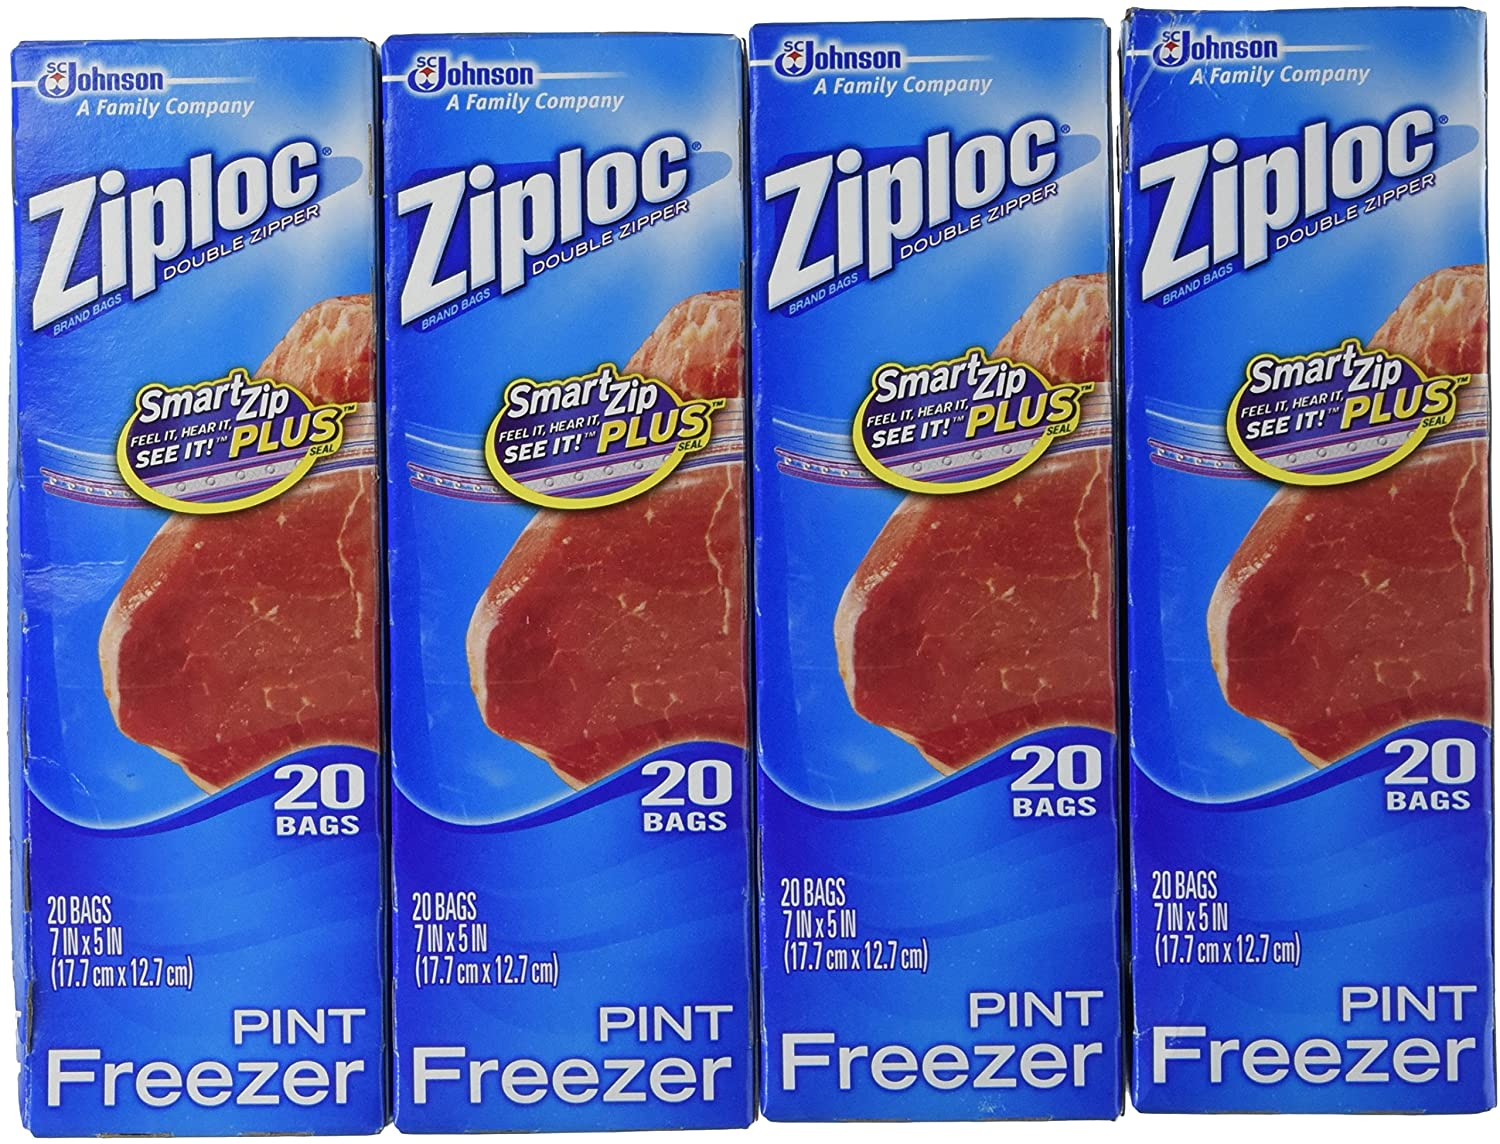 Ziploc Freezer Bags - Pint, 80 Count